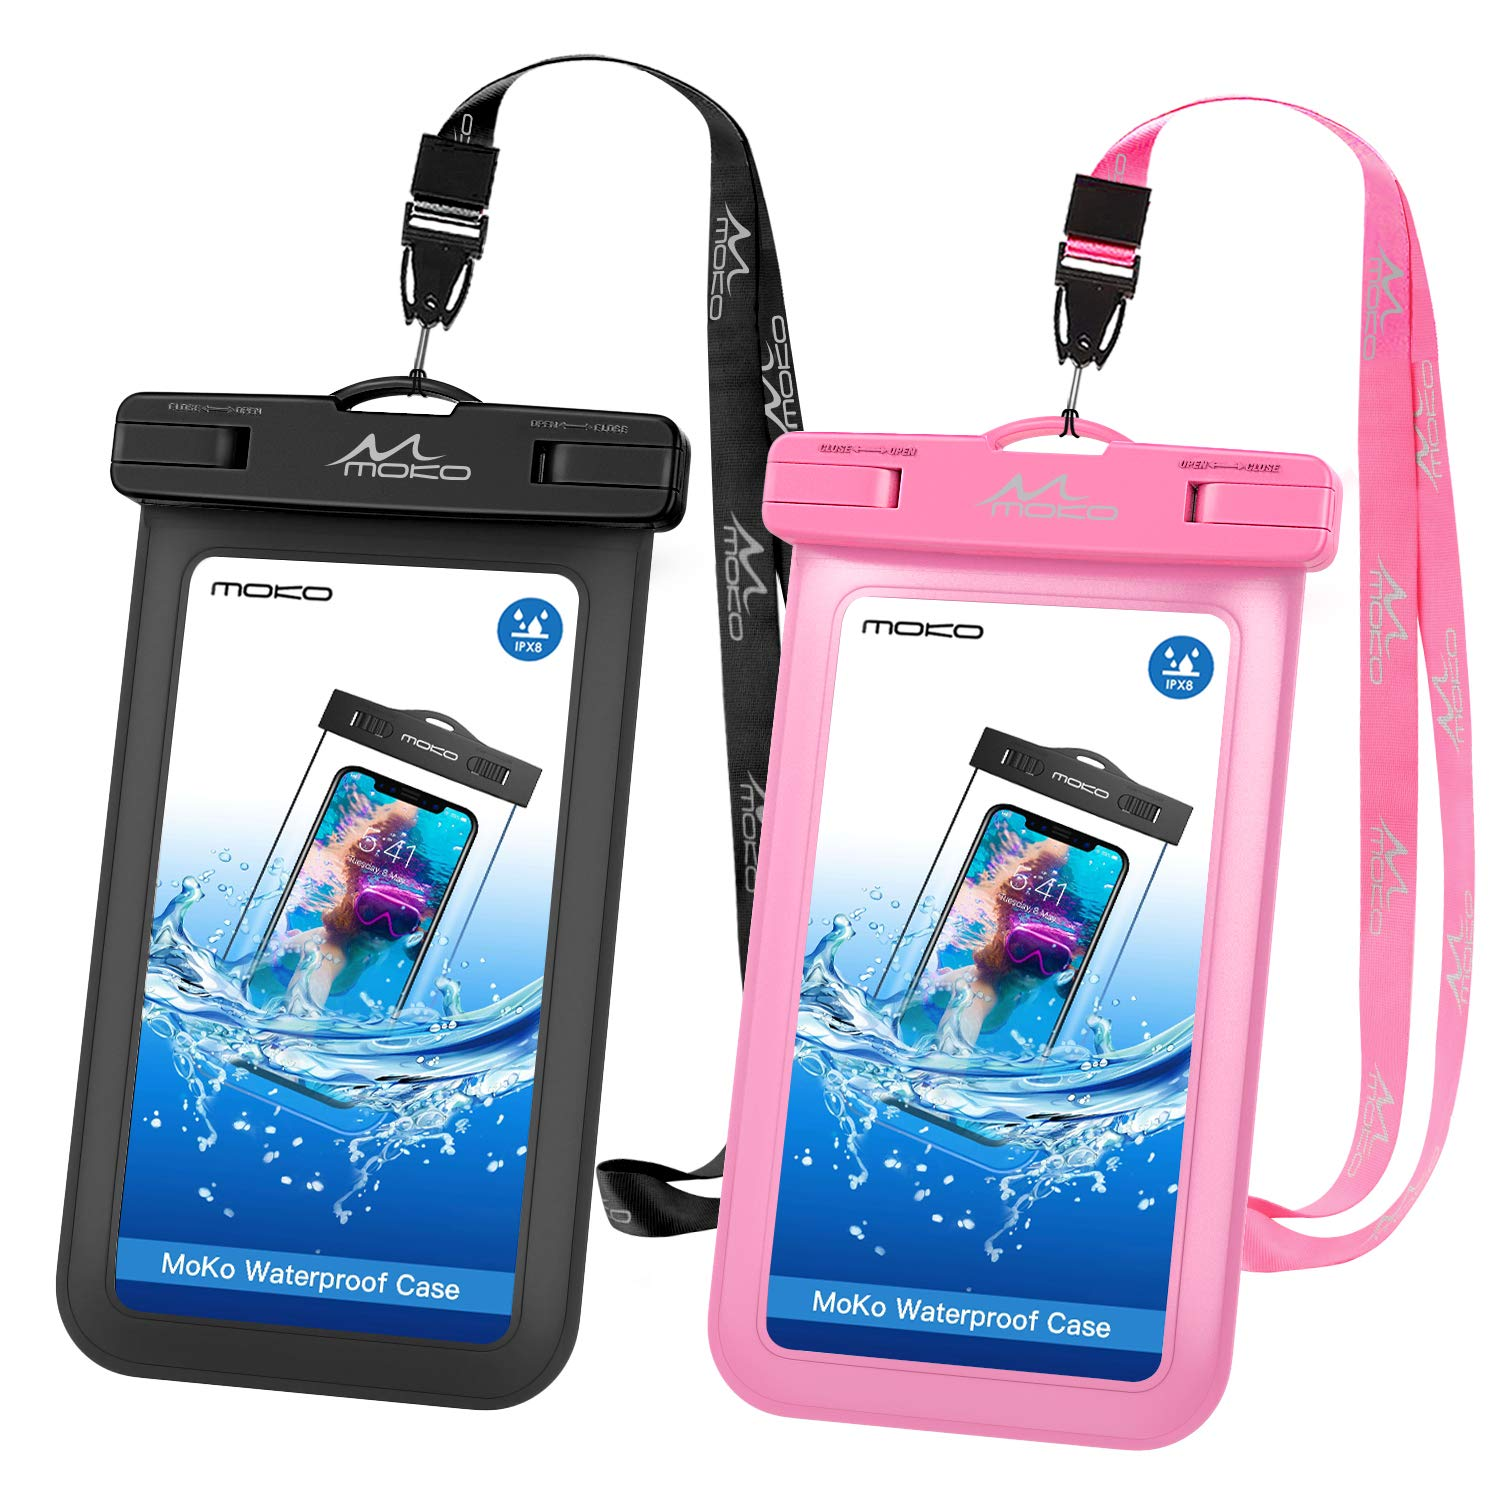 2a0bffed2309 MoKo Waterproof Phone Pouch [2 Pack], Underwater Waterproof Cellphone Case  Dry Bag with Lanyard Compatible with iPhone X/Xs/Xr/Xs Max, 8/7/6s Plus, ...